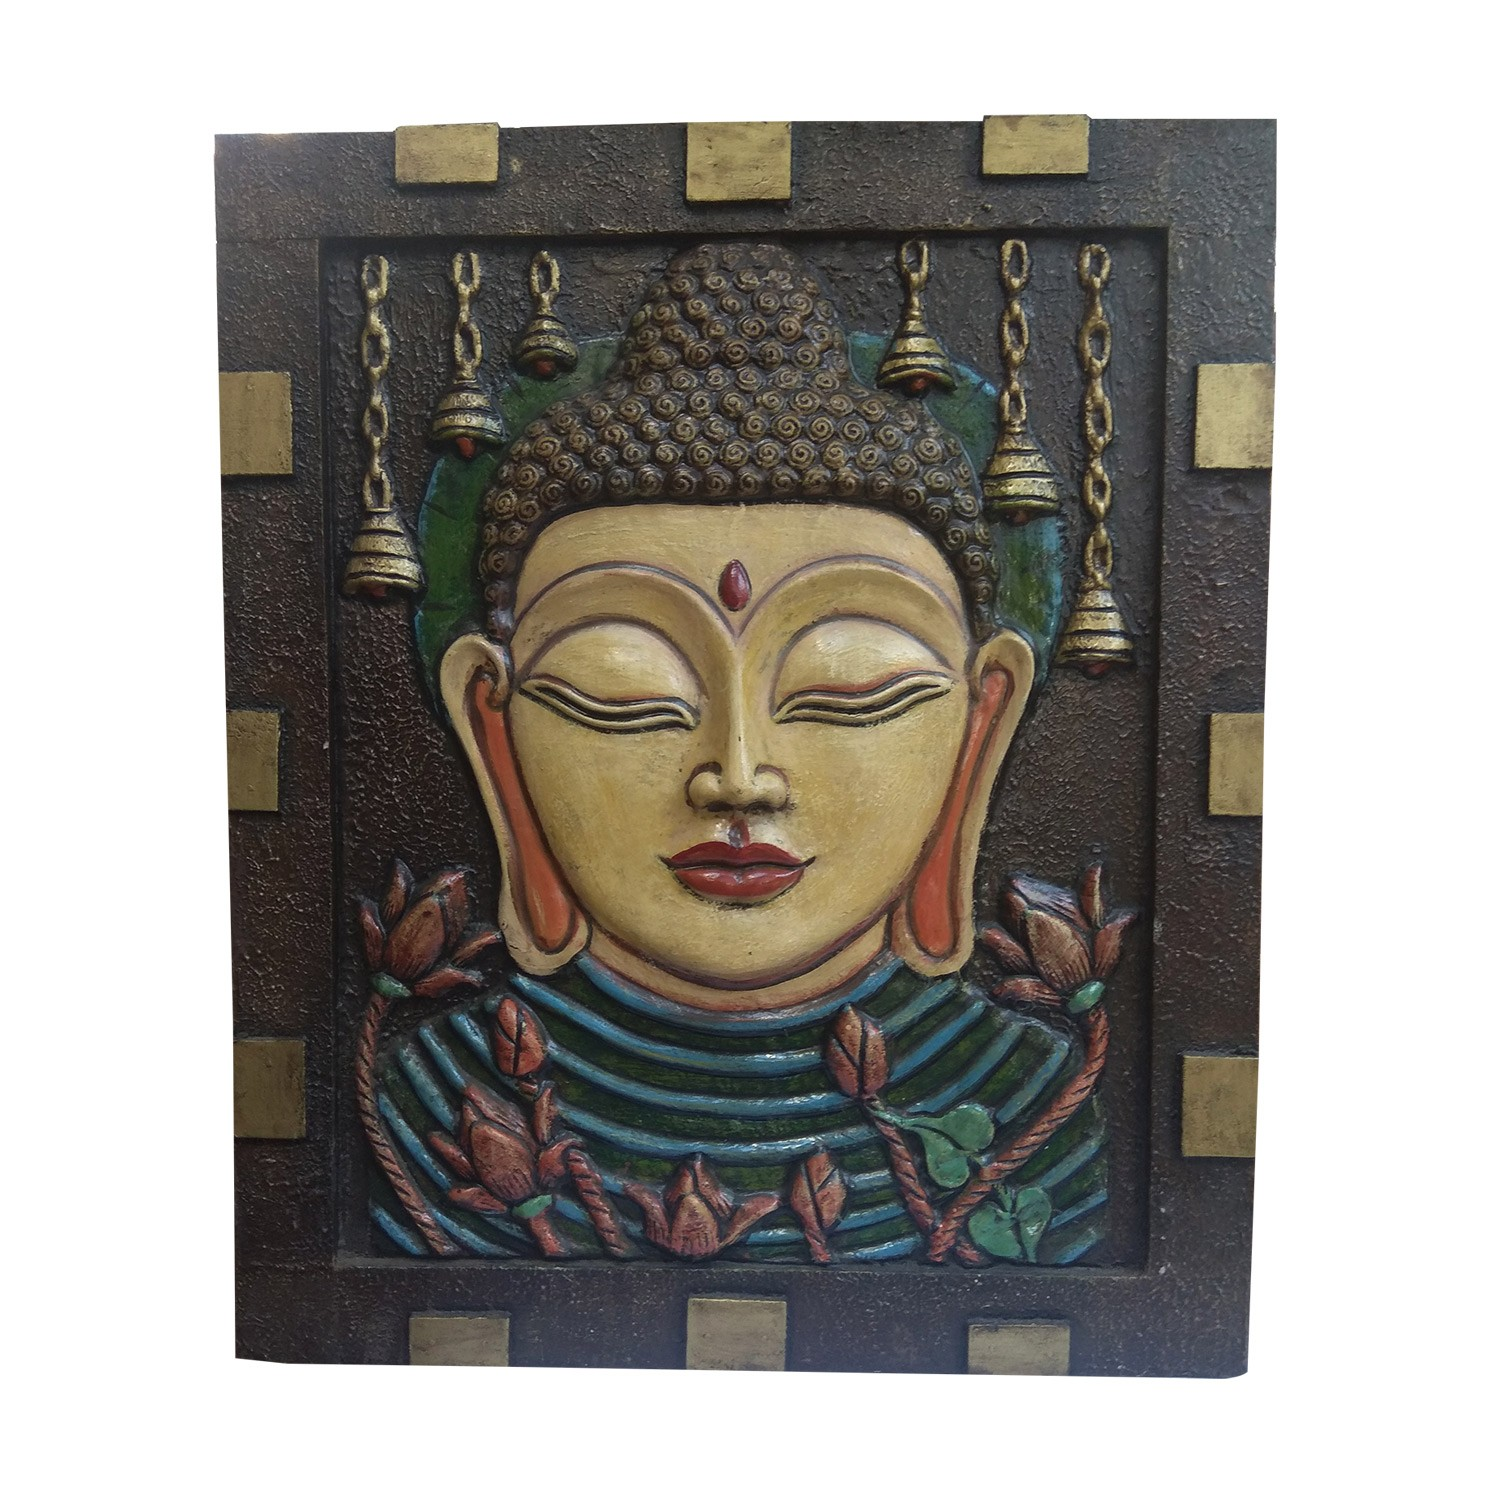 """India Meets India Handicraft Lord Budha Fibre Handpainted Installed On Wooden Wall Hanging 36""""X30"""" Inch, Best Gifting Made By Awarded Indian Artisan"""